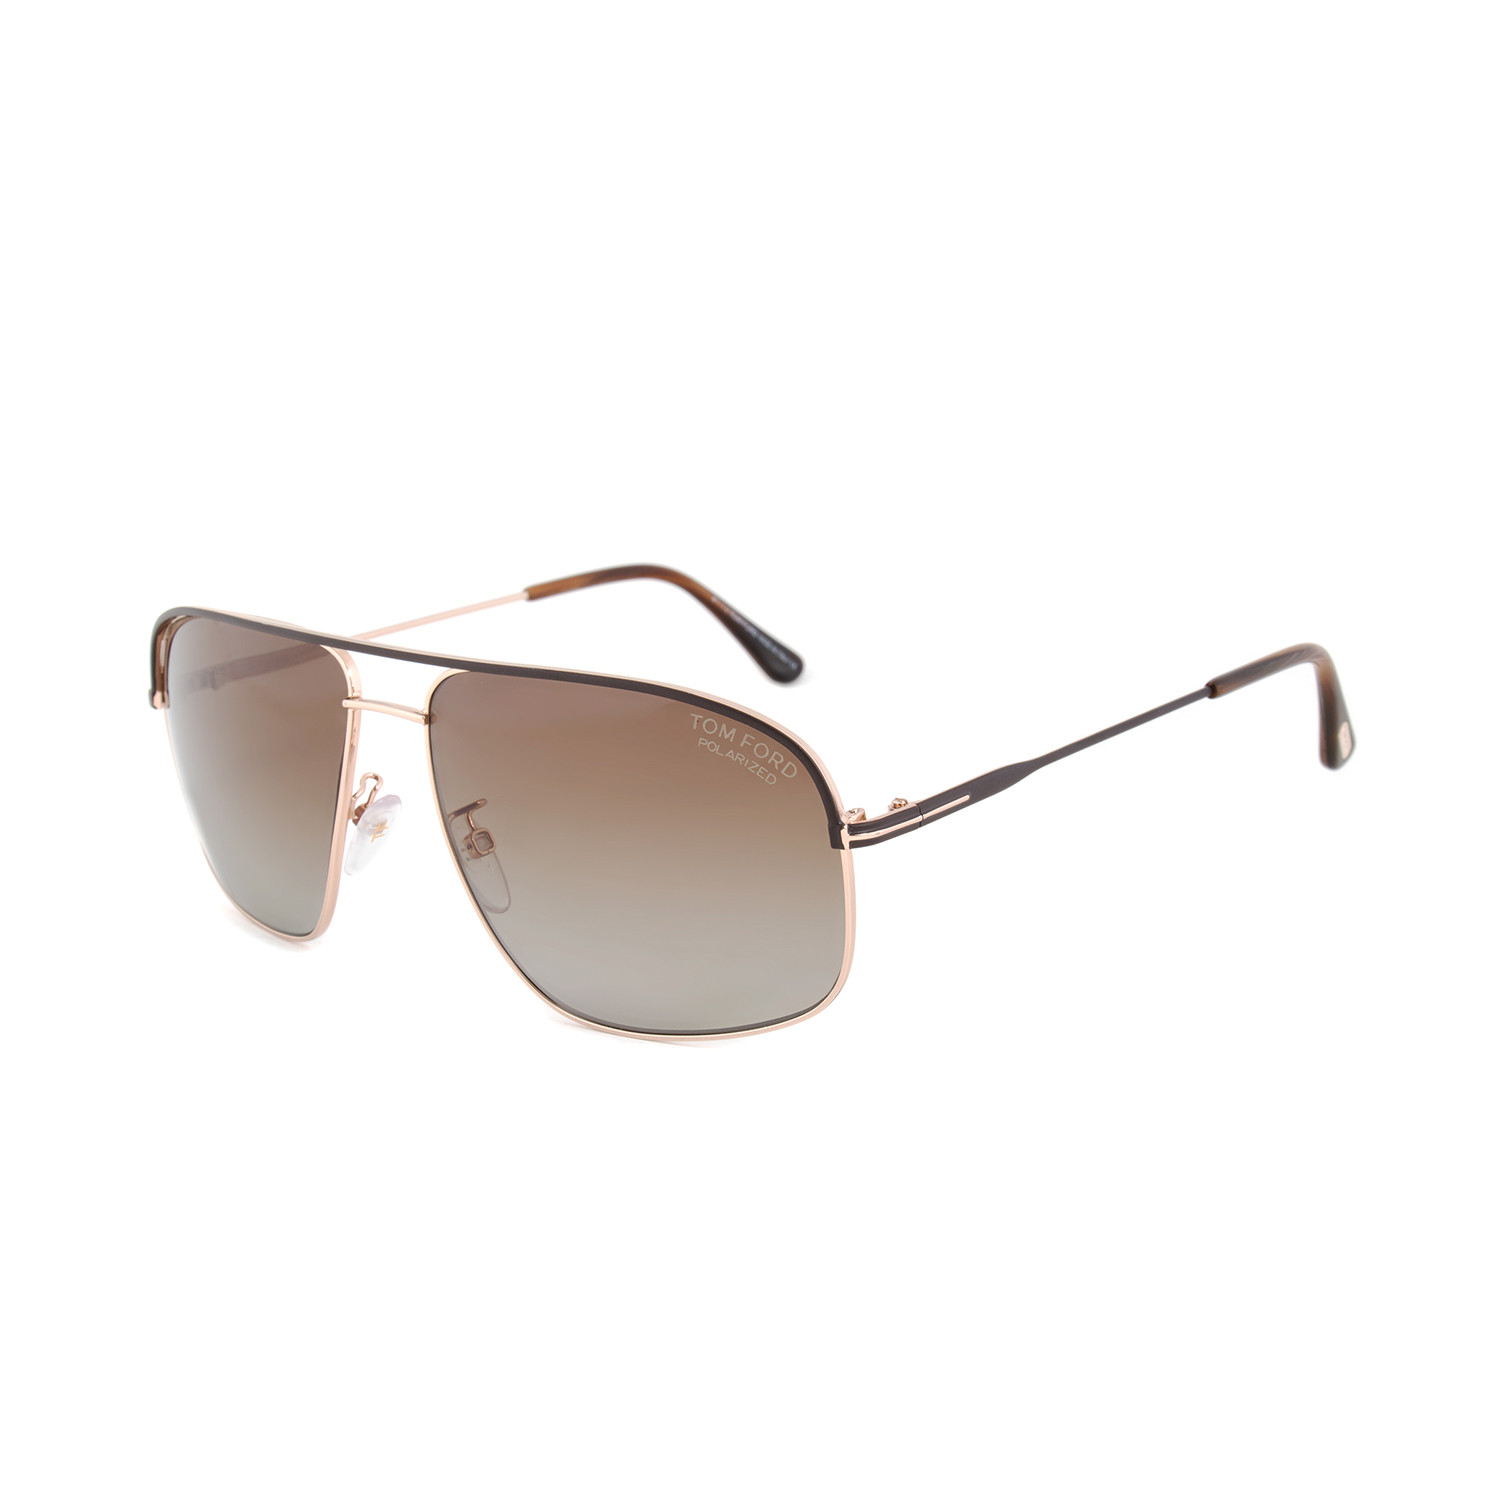 05bfc9658b156 Tom Ford    Justin Sunglasses    FT0467F 50H - Tom Ford - Touch of ...